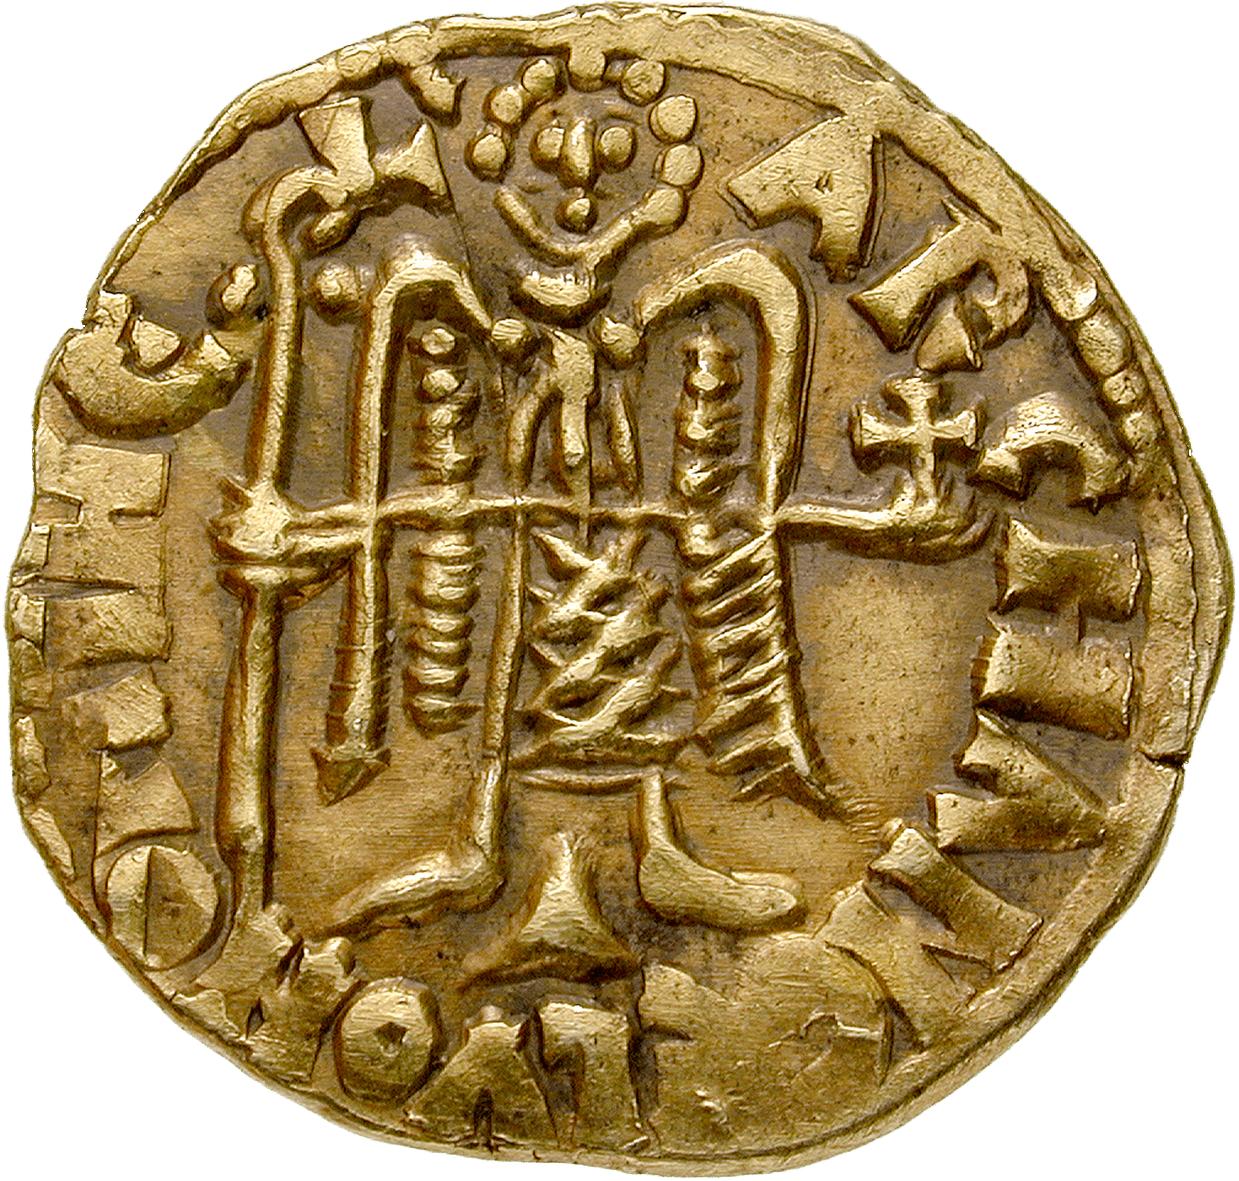 Kingdom of the Lombards, Duchy of Benevento, Sico I, Solidus (reverse)